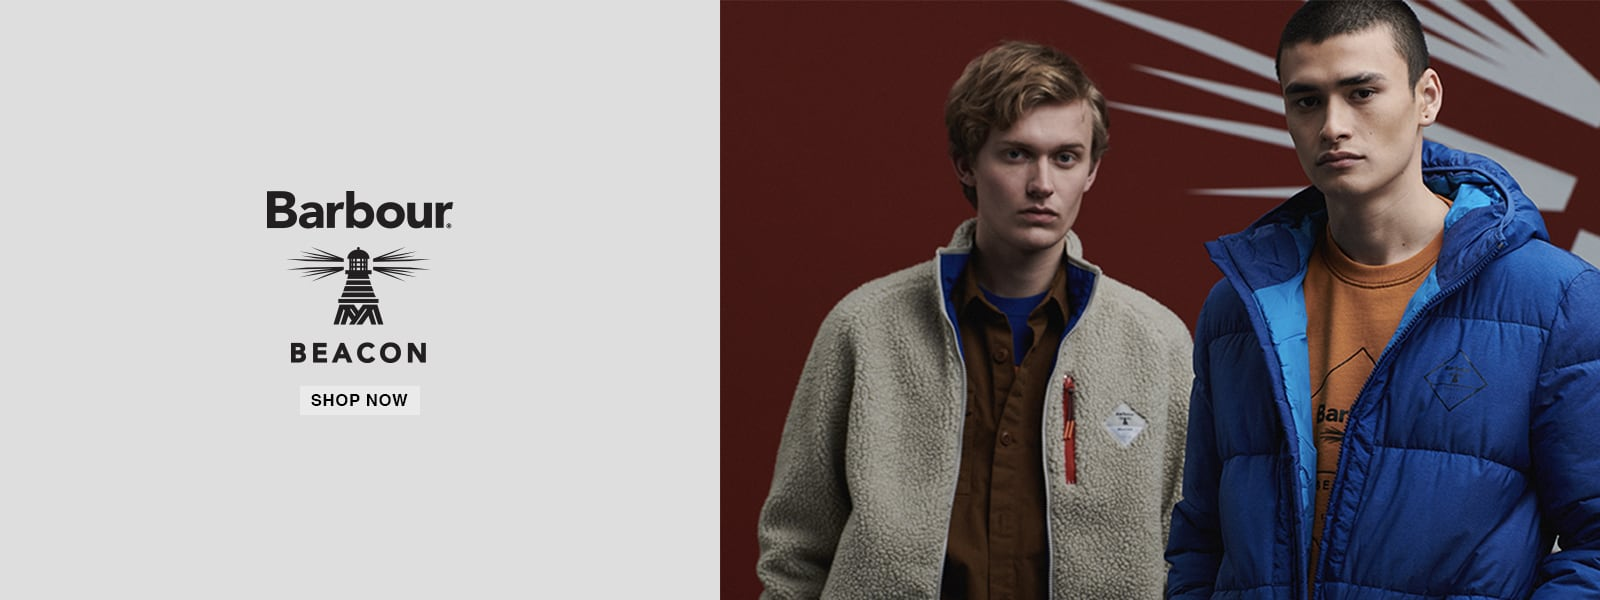 Barbour Beacon - Autumn Winter 19 Collection